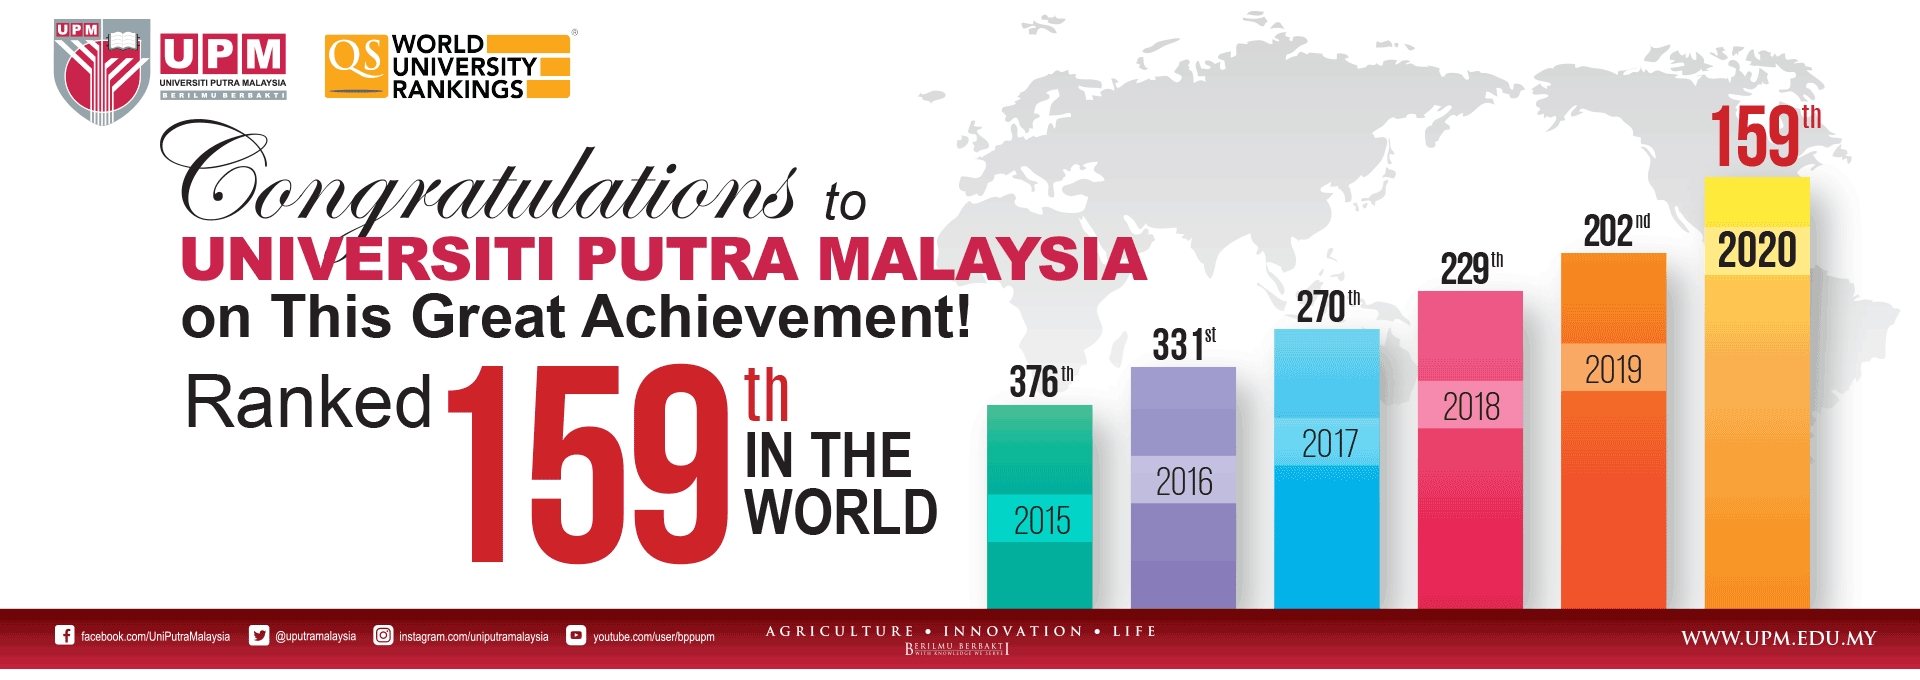 UPM MADE THE HIGHEST LEAP IN THE COUNTRY IN WORLD BEST UNIVERSITY RANKINGS